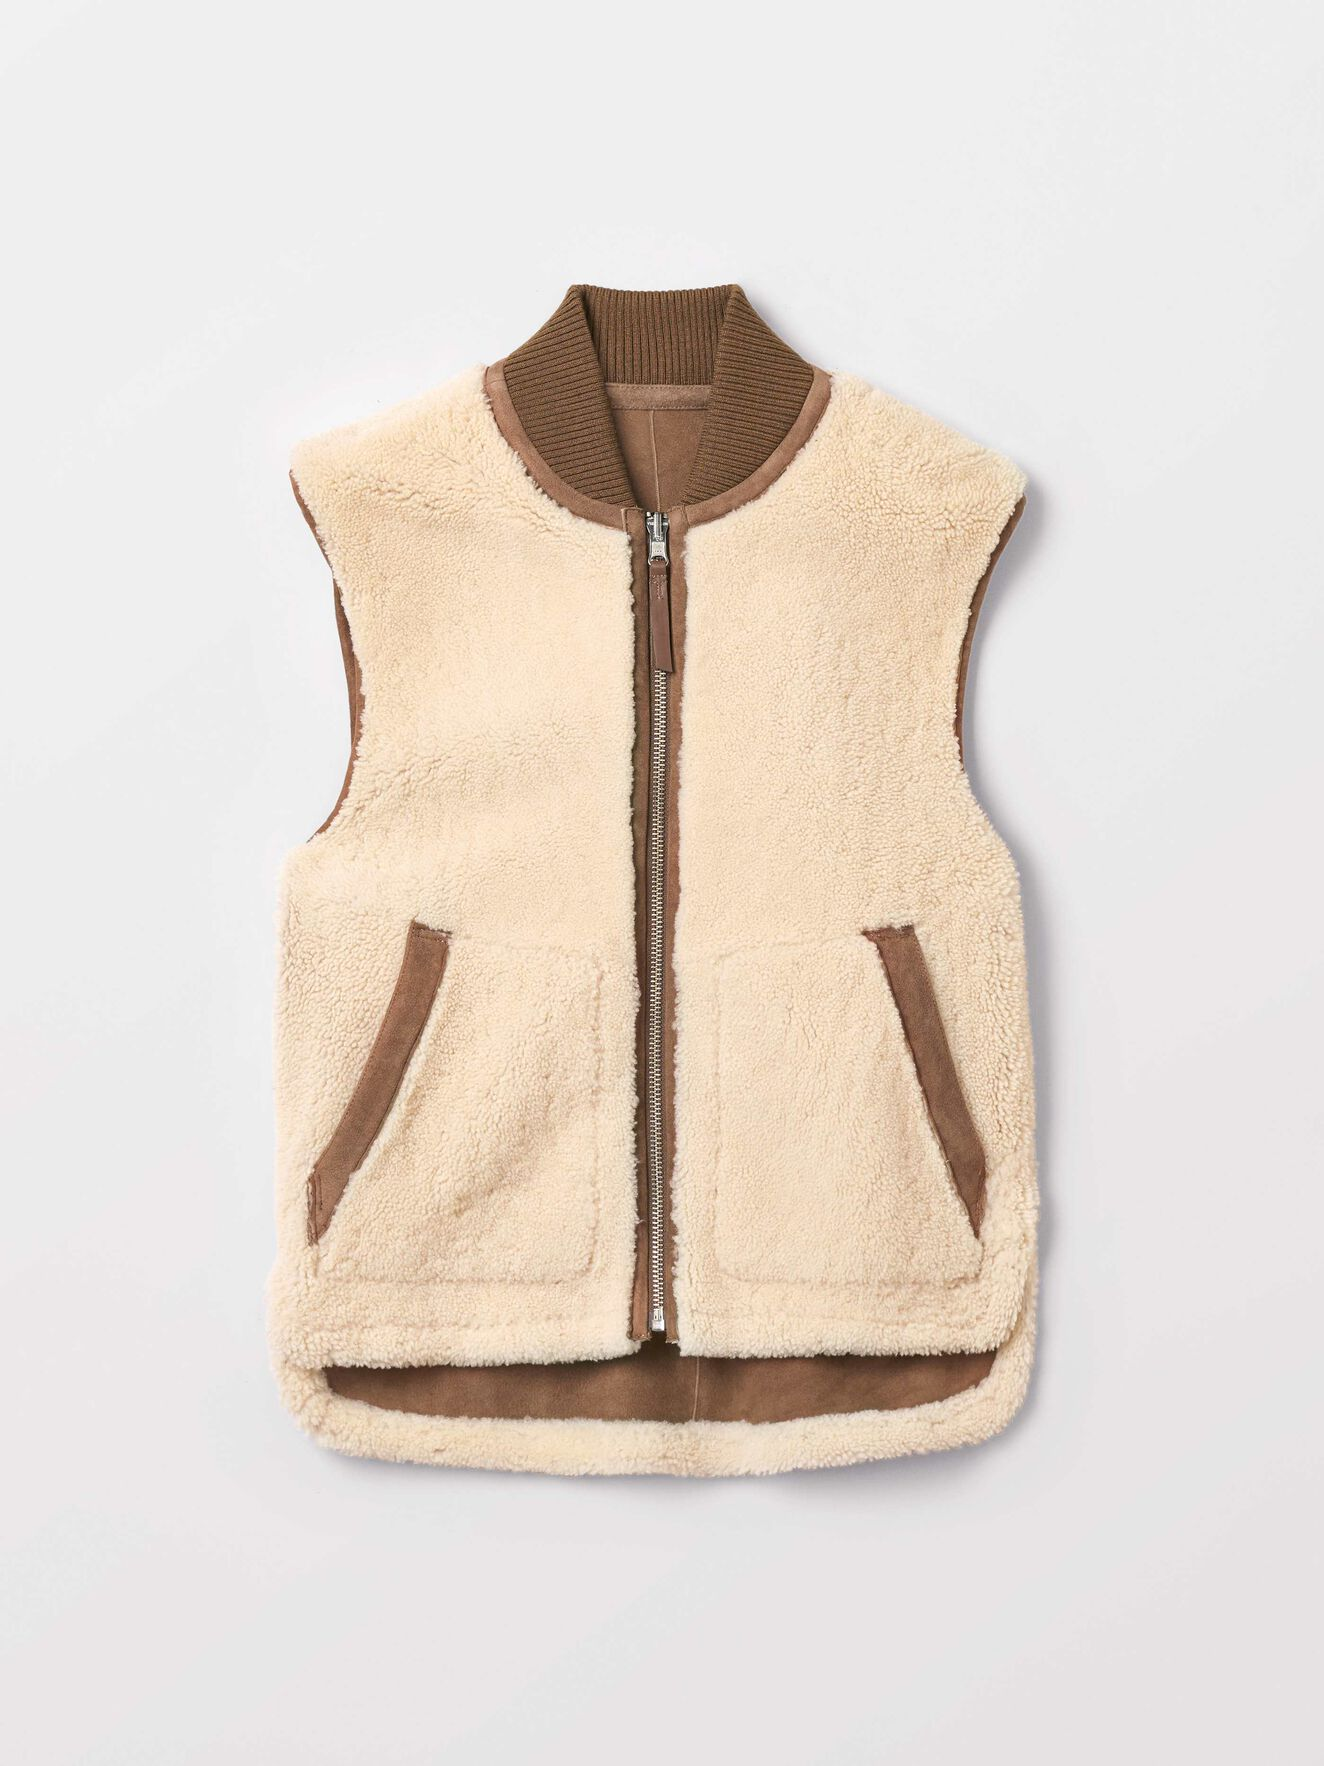 Lamir Vest in Dark Honey from Tiger of Sweden